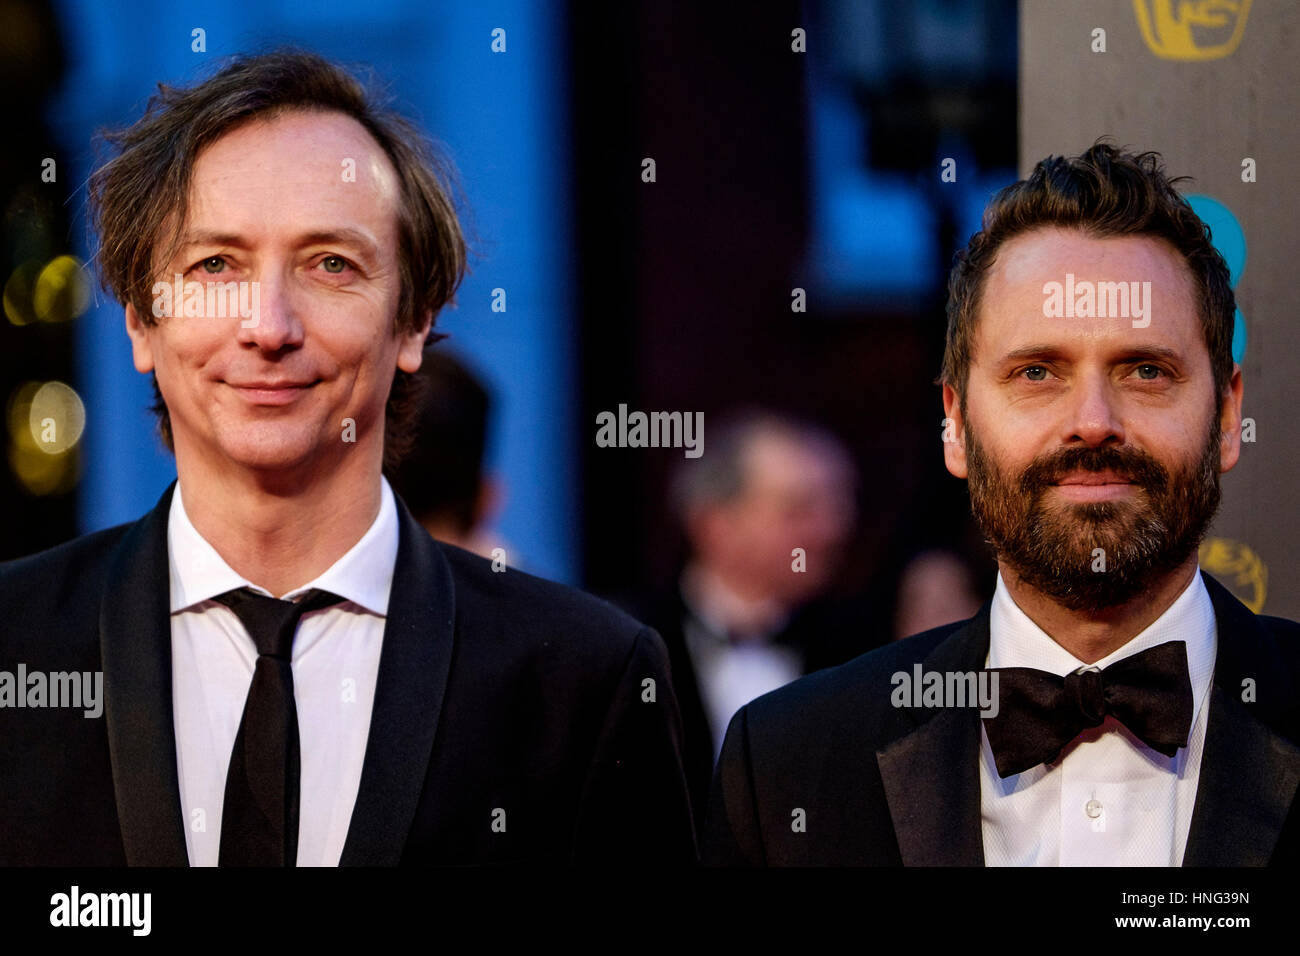 London, UK. 12th February 2017. Volker Bertelmann and Dustin O'Halloran arrives at the EE British Academy Film - Stock Image